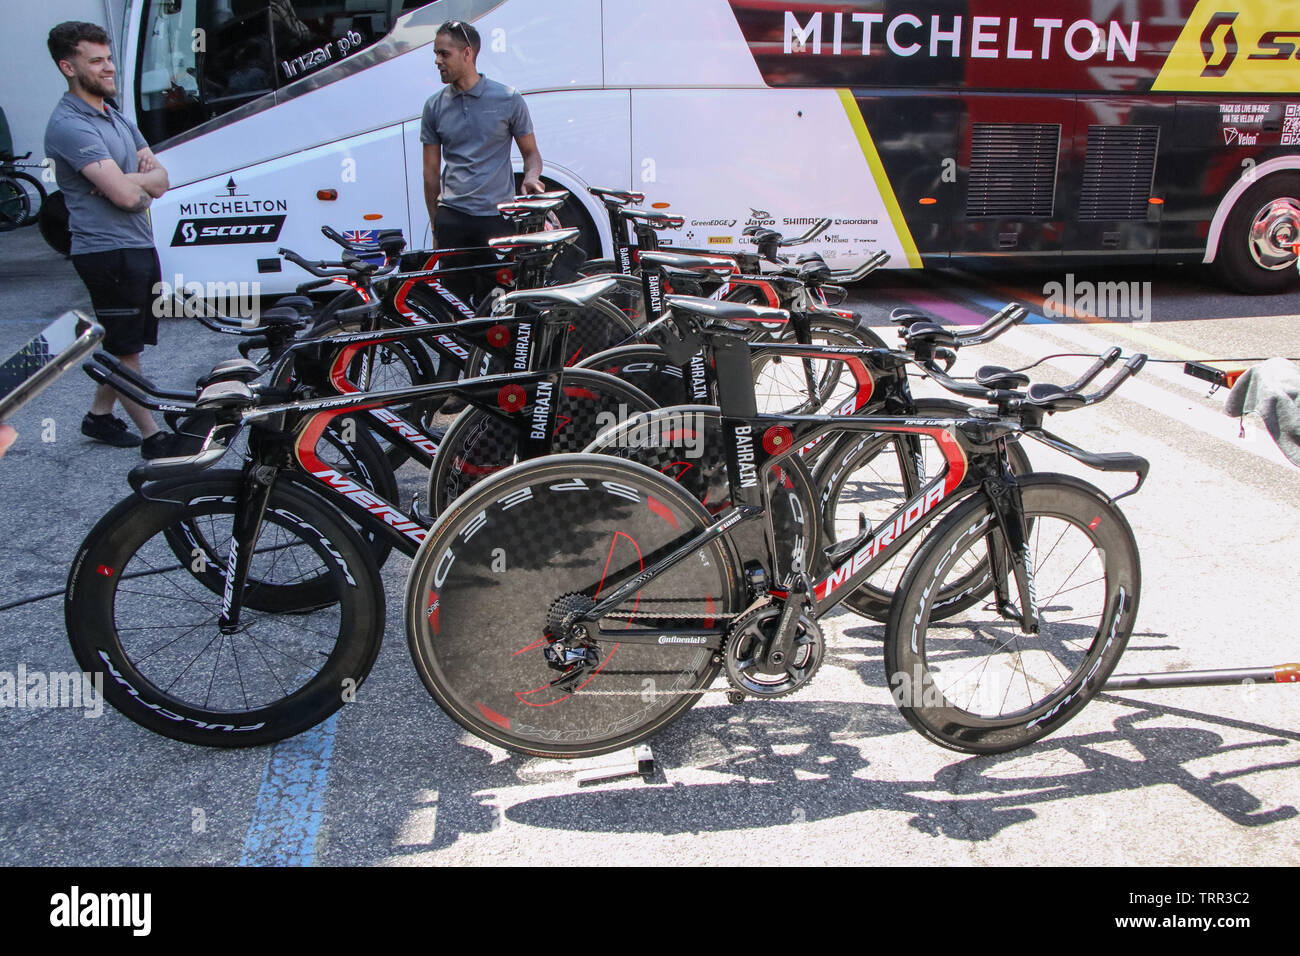 Merida Time Trial Bikes ready for Stage 21 of the Italian Giro d'Italia 2019 in Verona, Italy - Stock Image